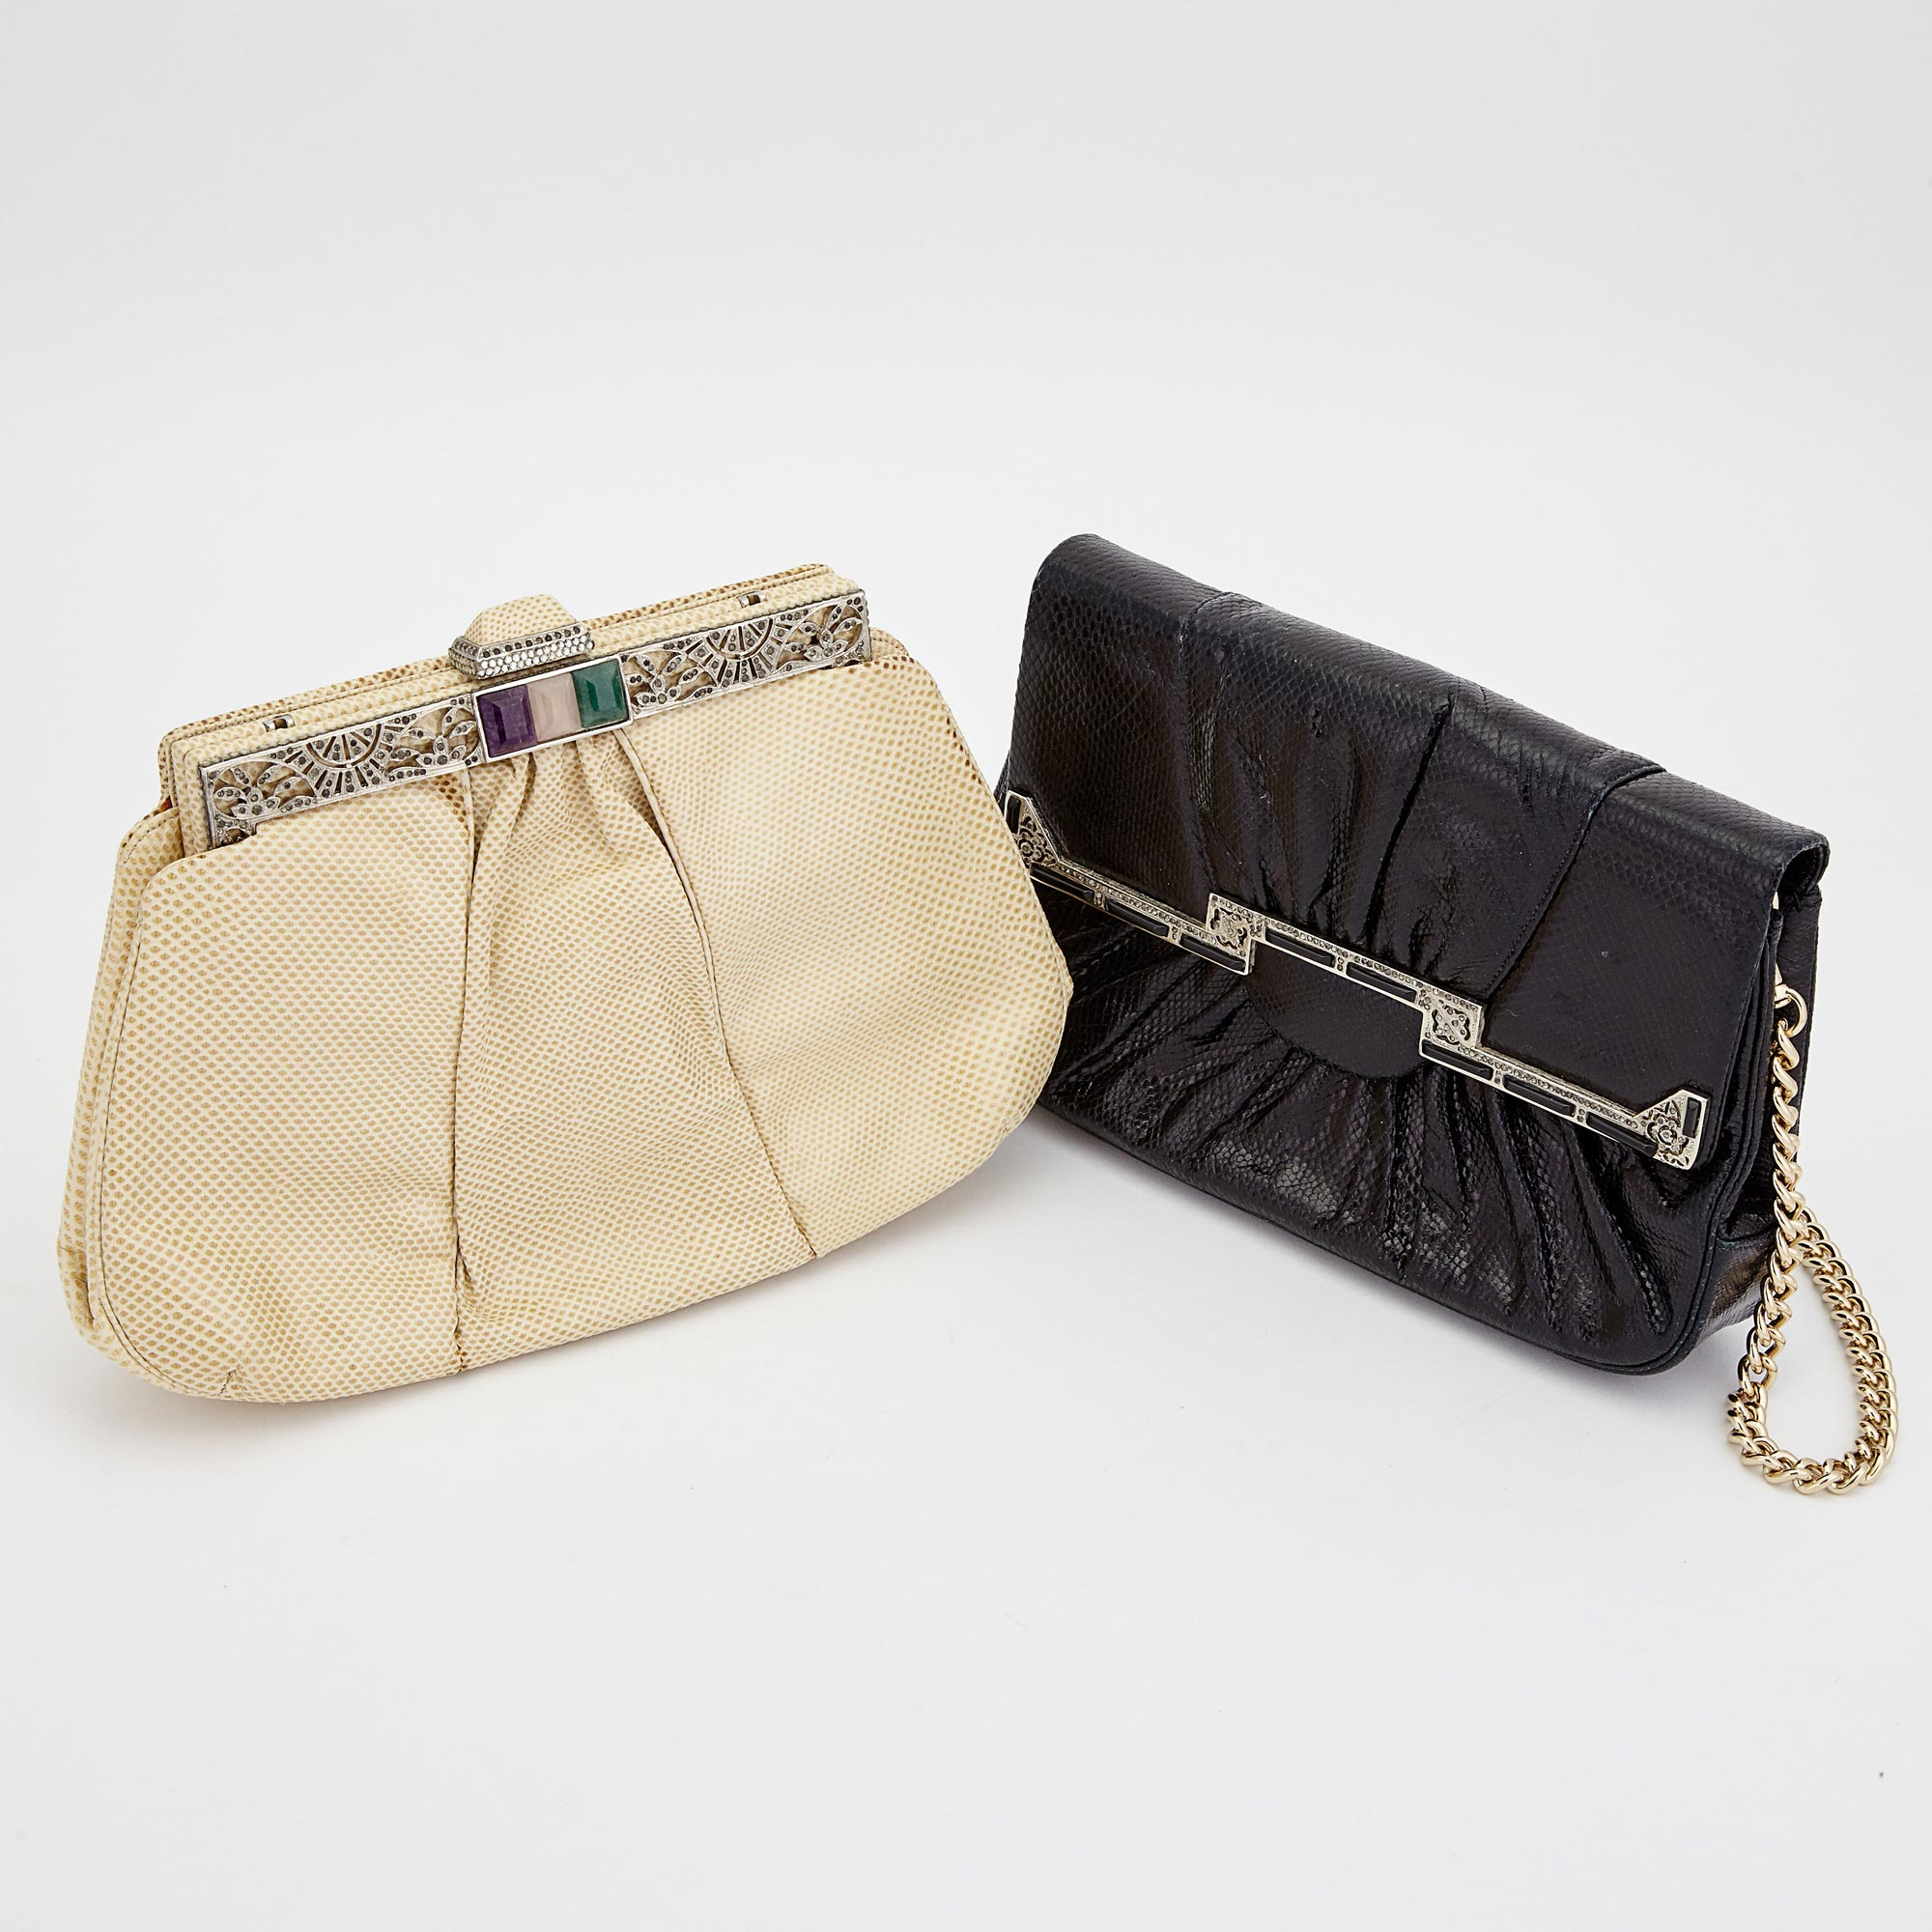 Lot image - Two Black and Cream Leather Clutches, Judith Leiber